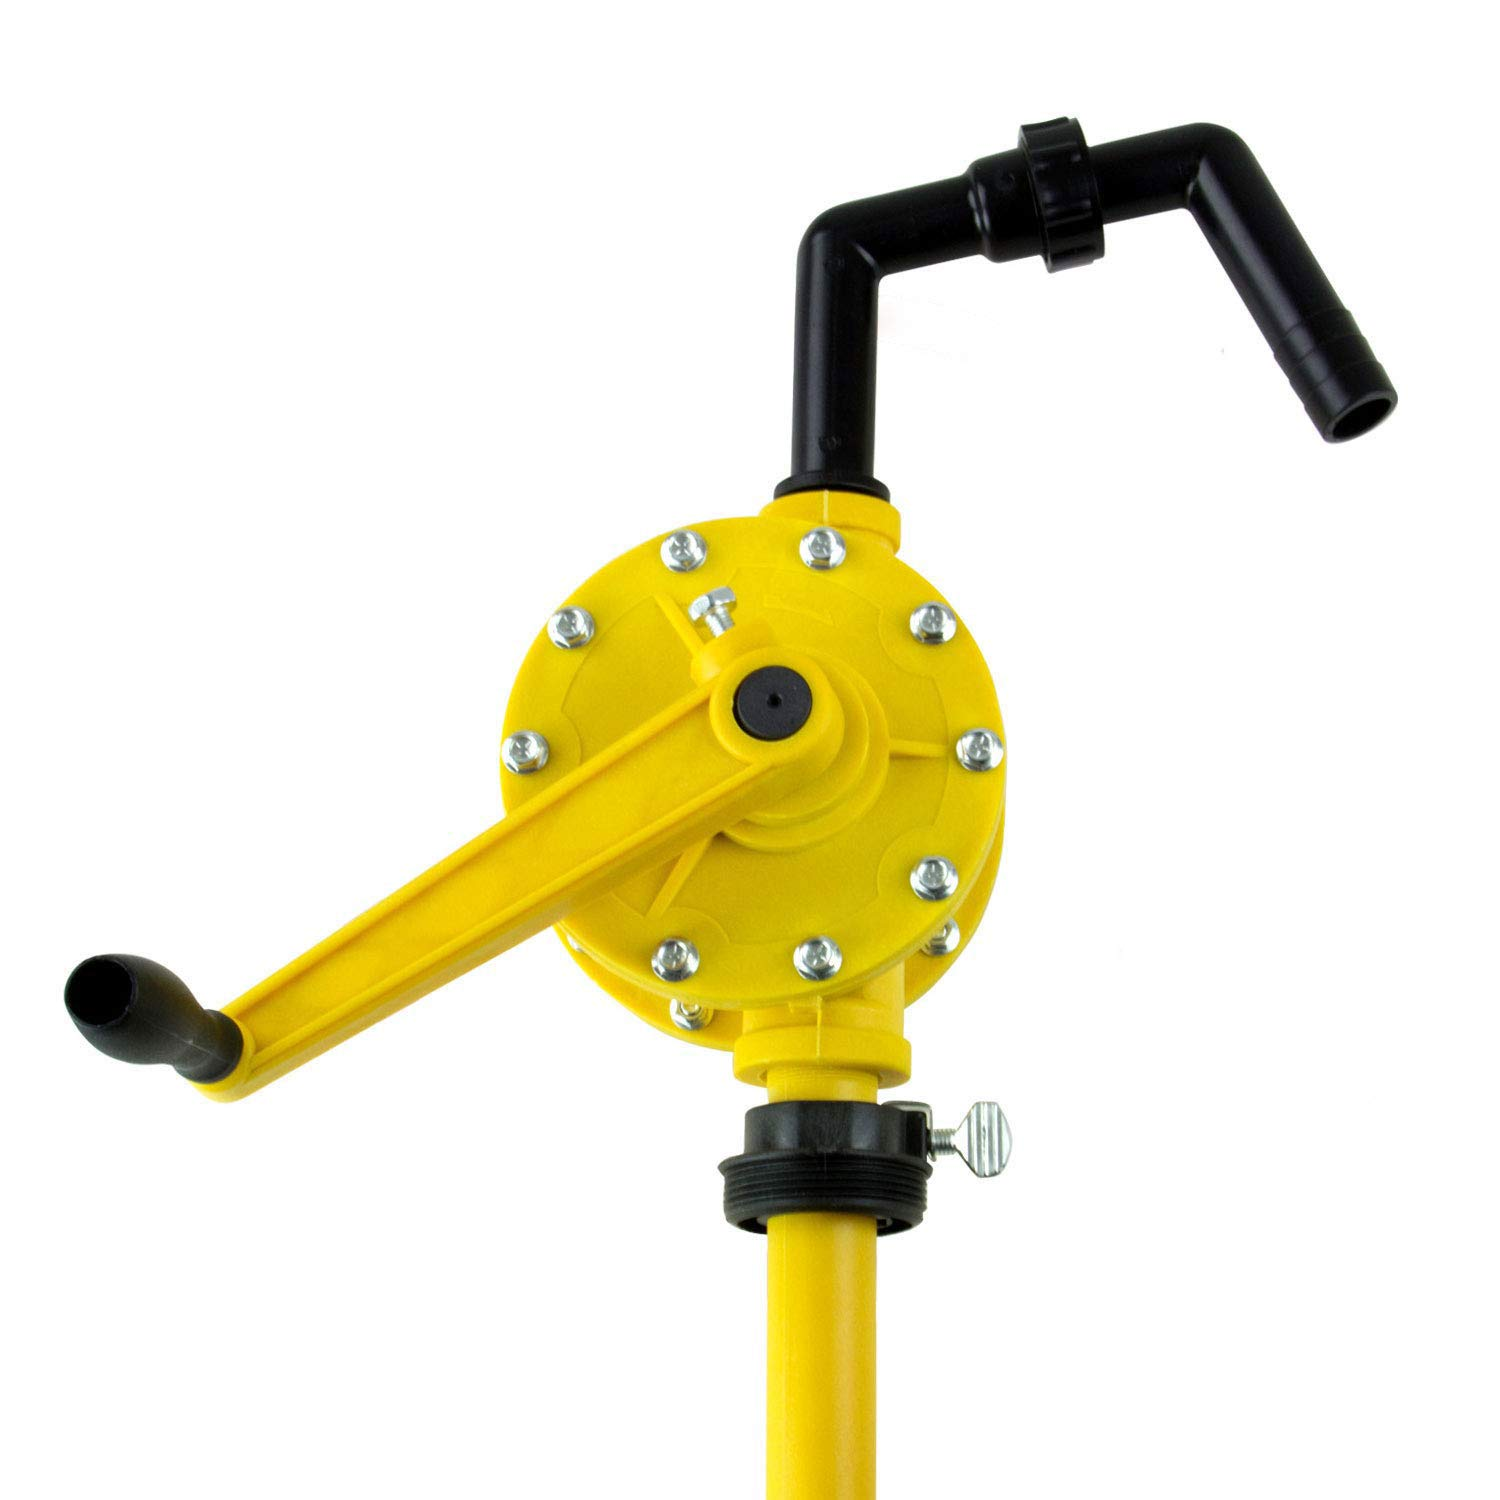 TRRP90P Plastic Rotary Drum Barrel Pump for water based solutions and all petroleum products